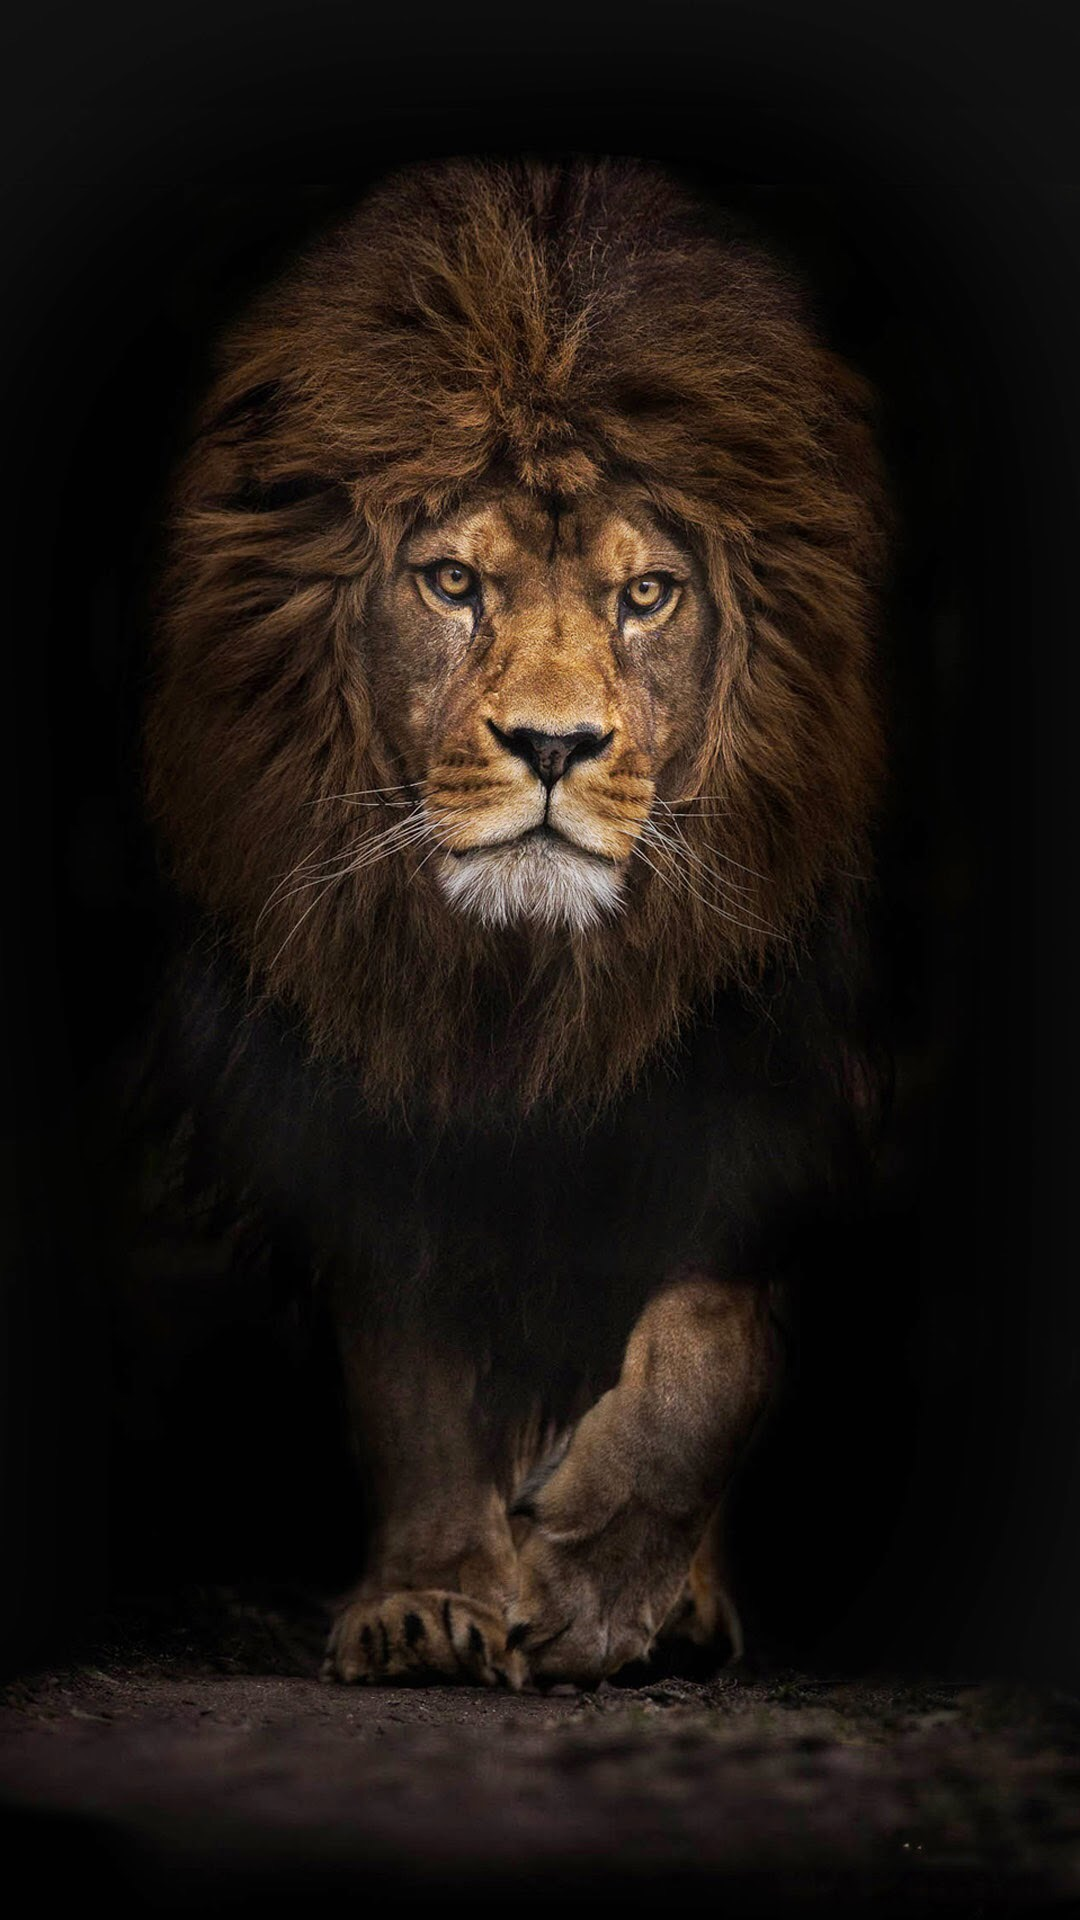 Lion Wallpaper For Iphone 11 Pro Max X 8 7 6 Free Download On 3wallpapers